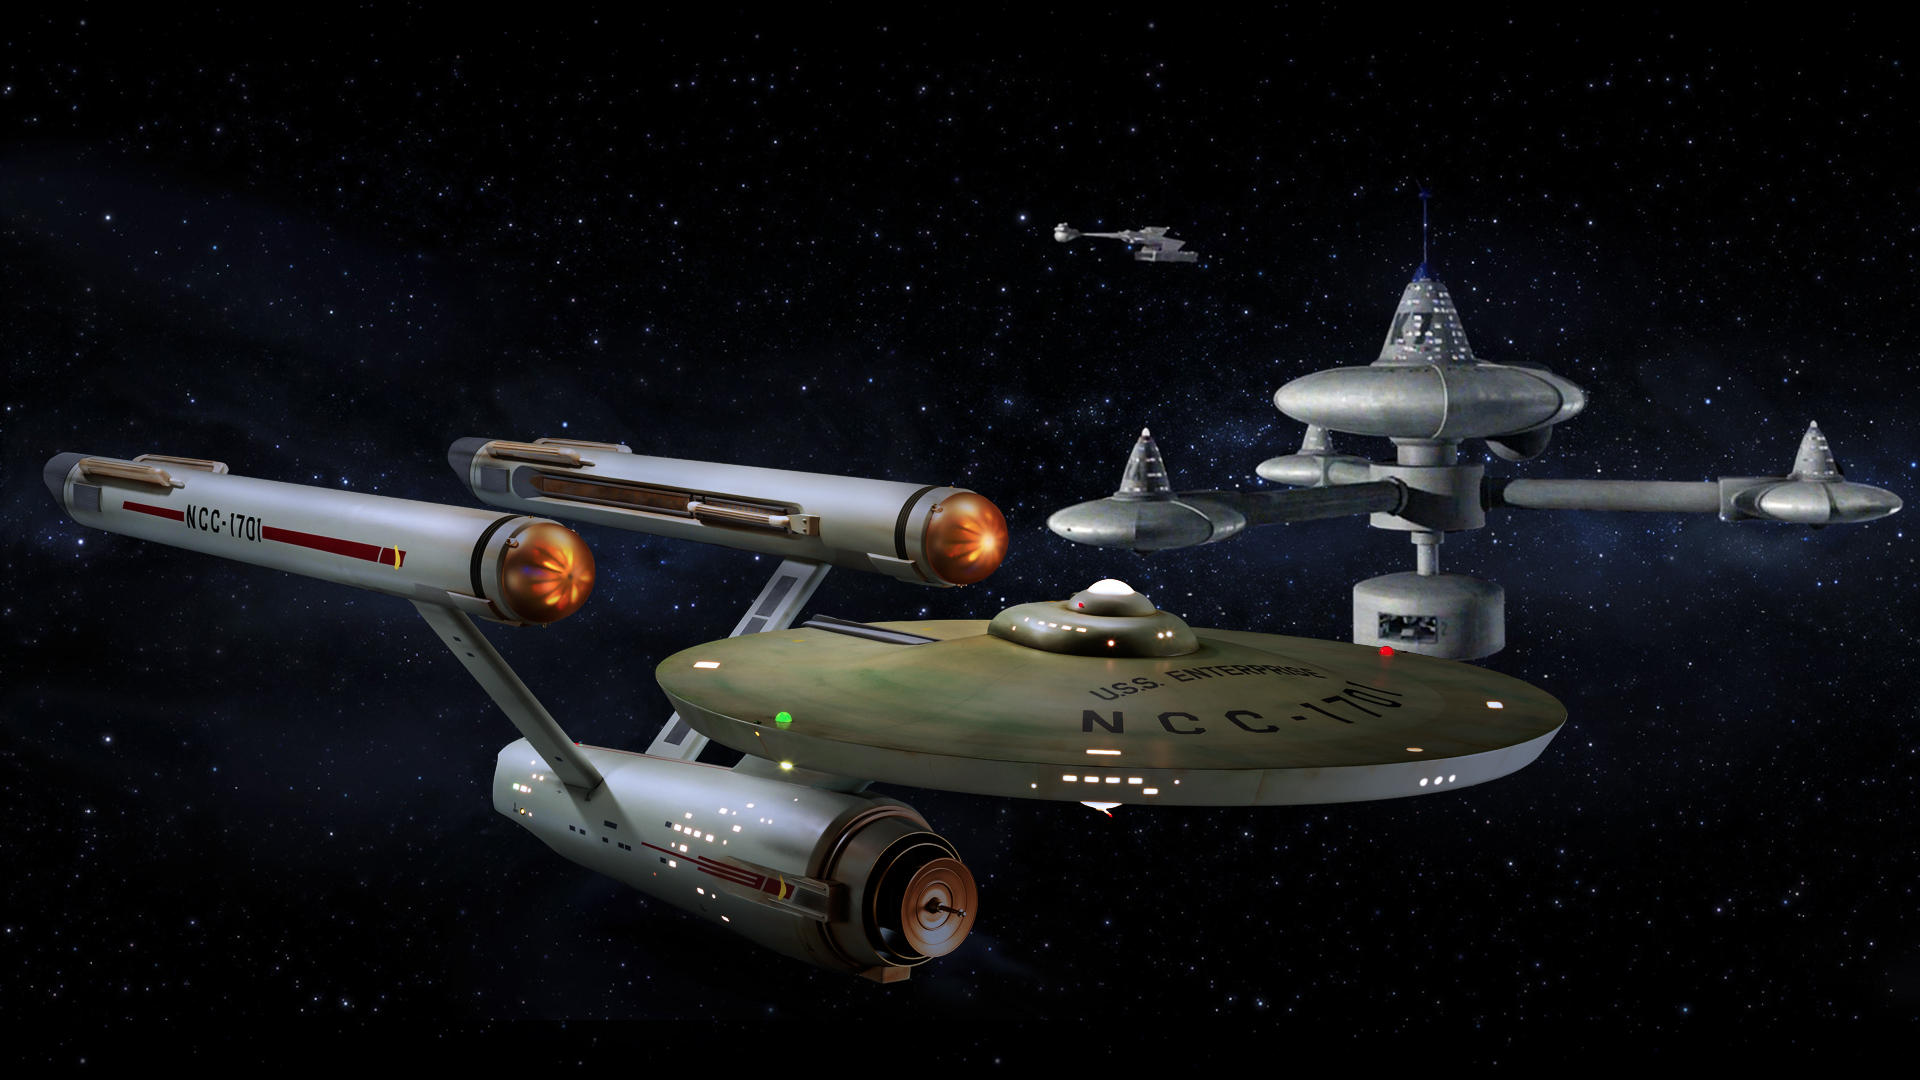 Restored Starship Enterprise Model at K-7 Station by Cannikin1701